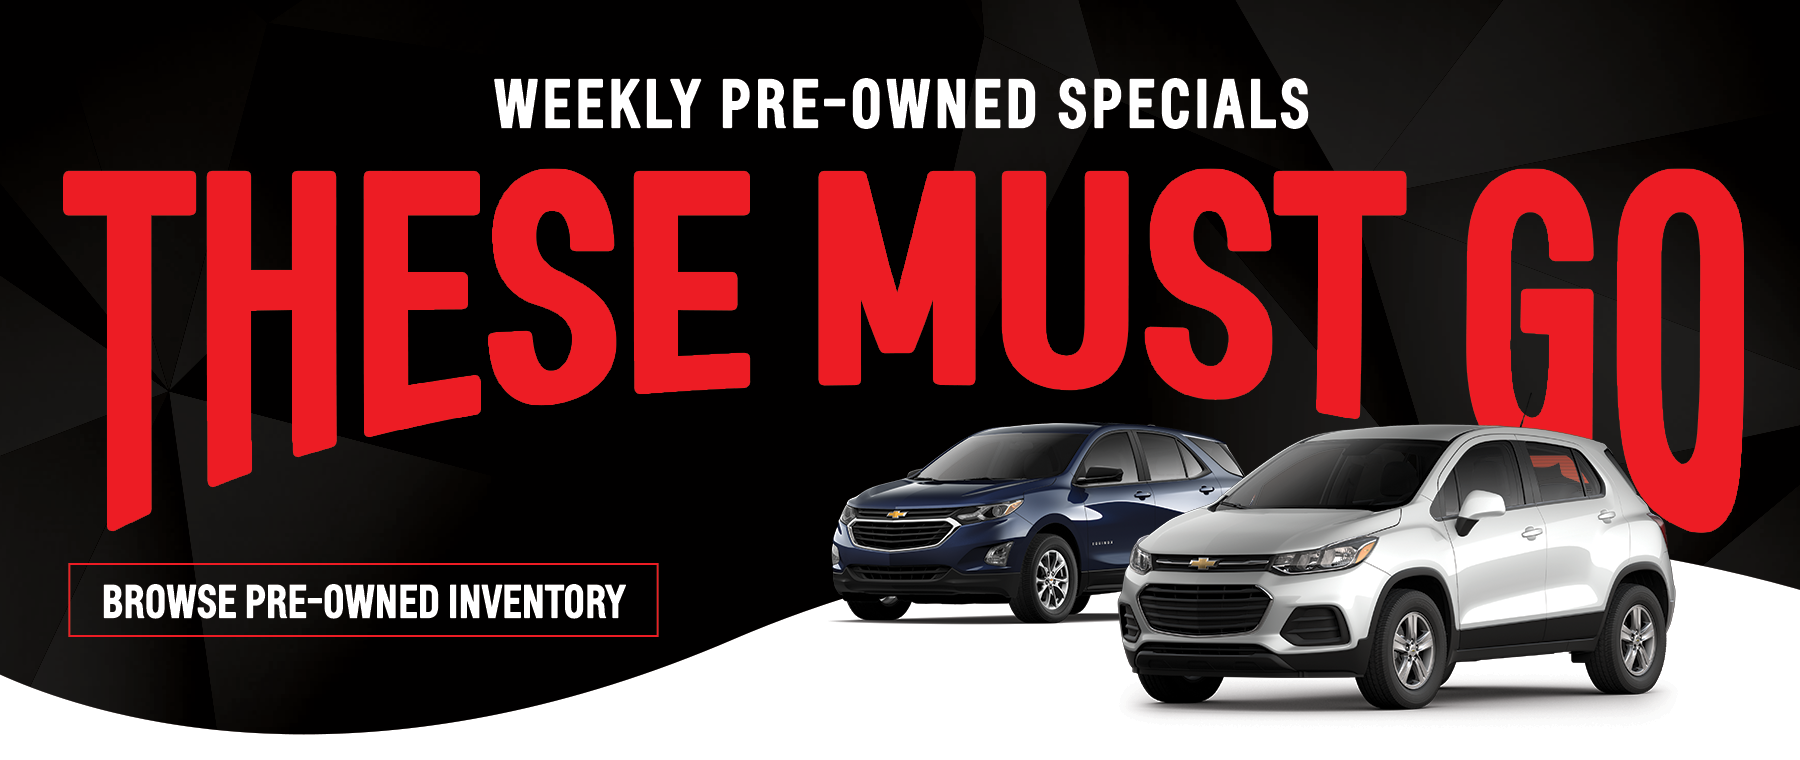 Weekly Pre Owned Specials